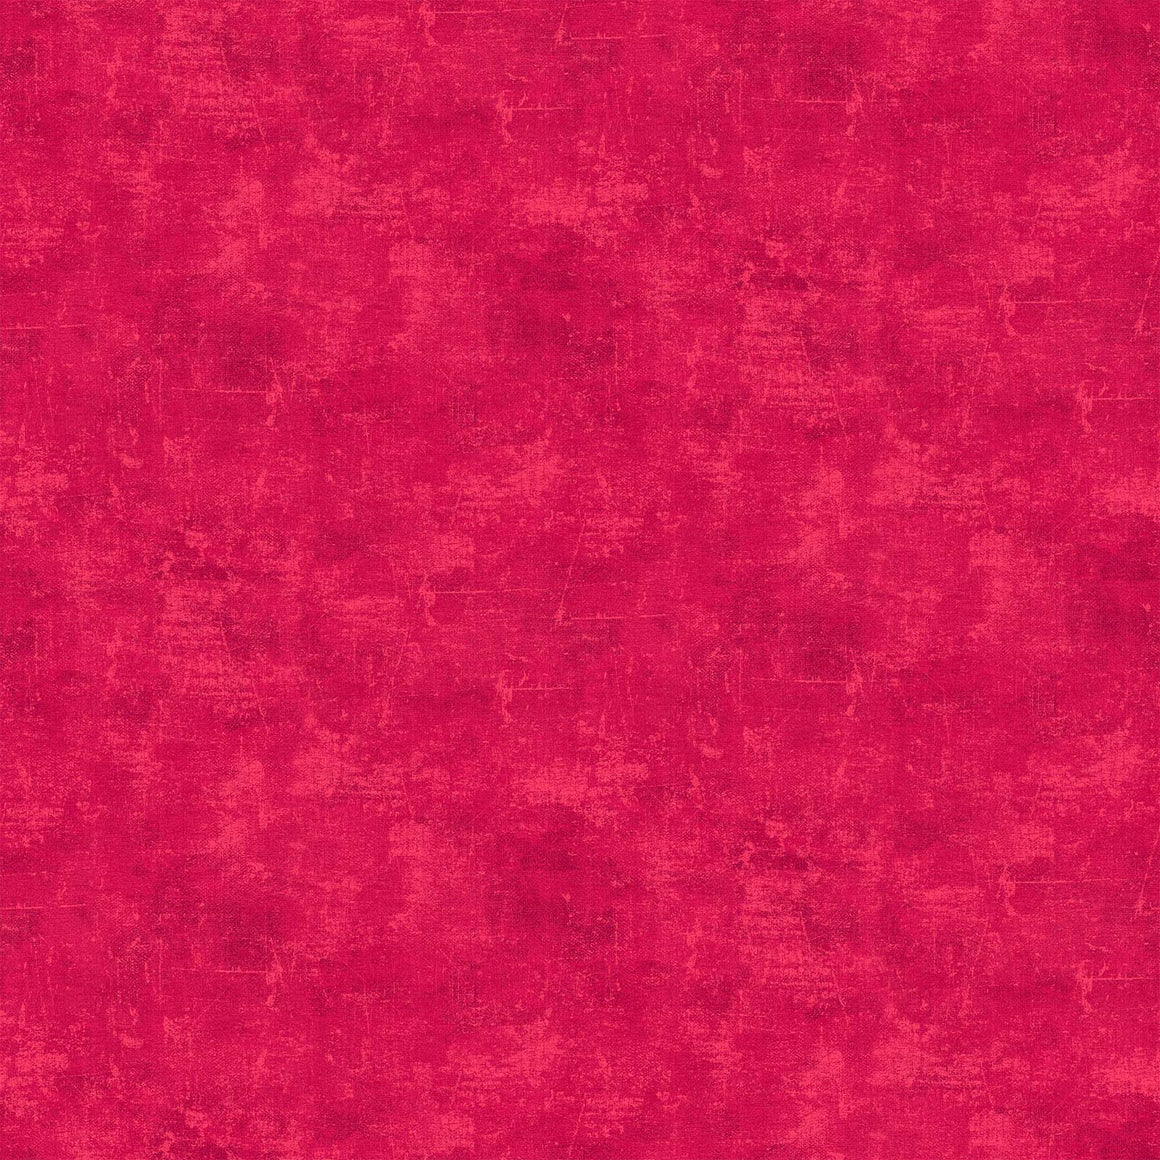 Bright Pink - Canvas Texture - 9030-22, Designer Fabric, Northcott, [variant_title] - Mad About Patchwork